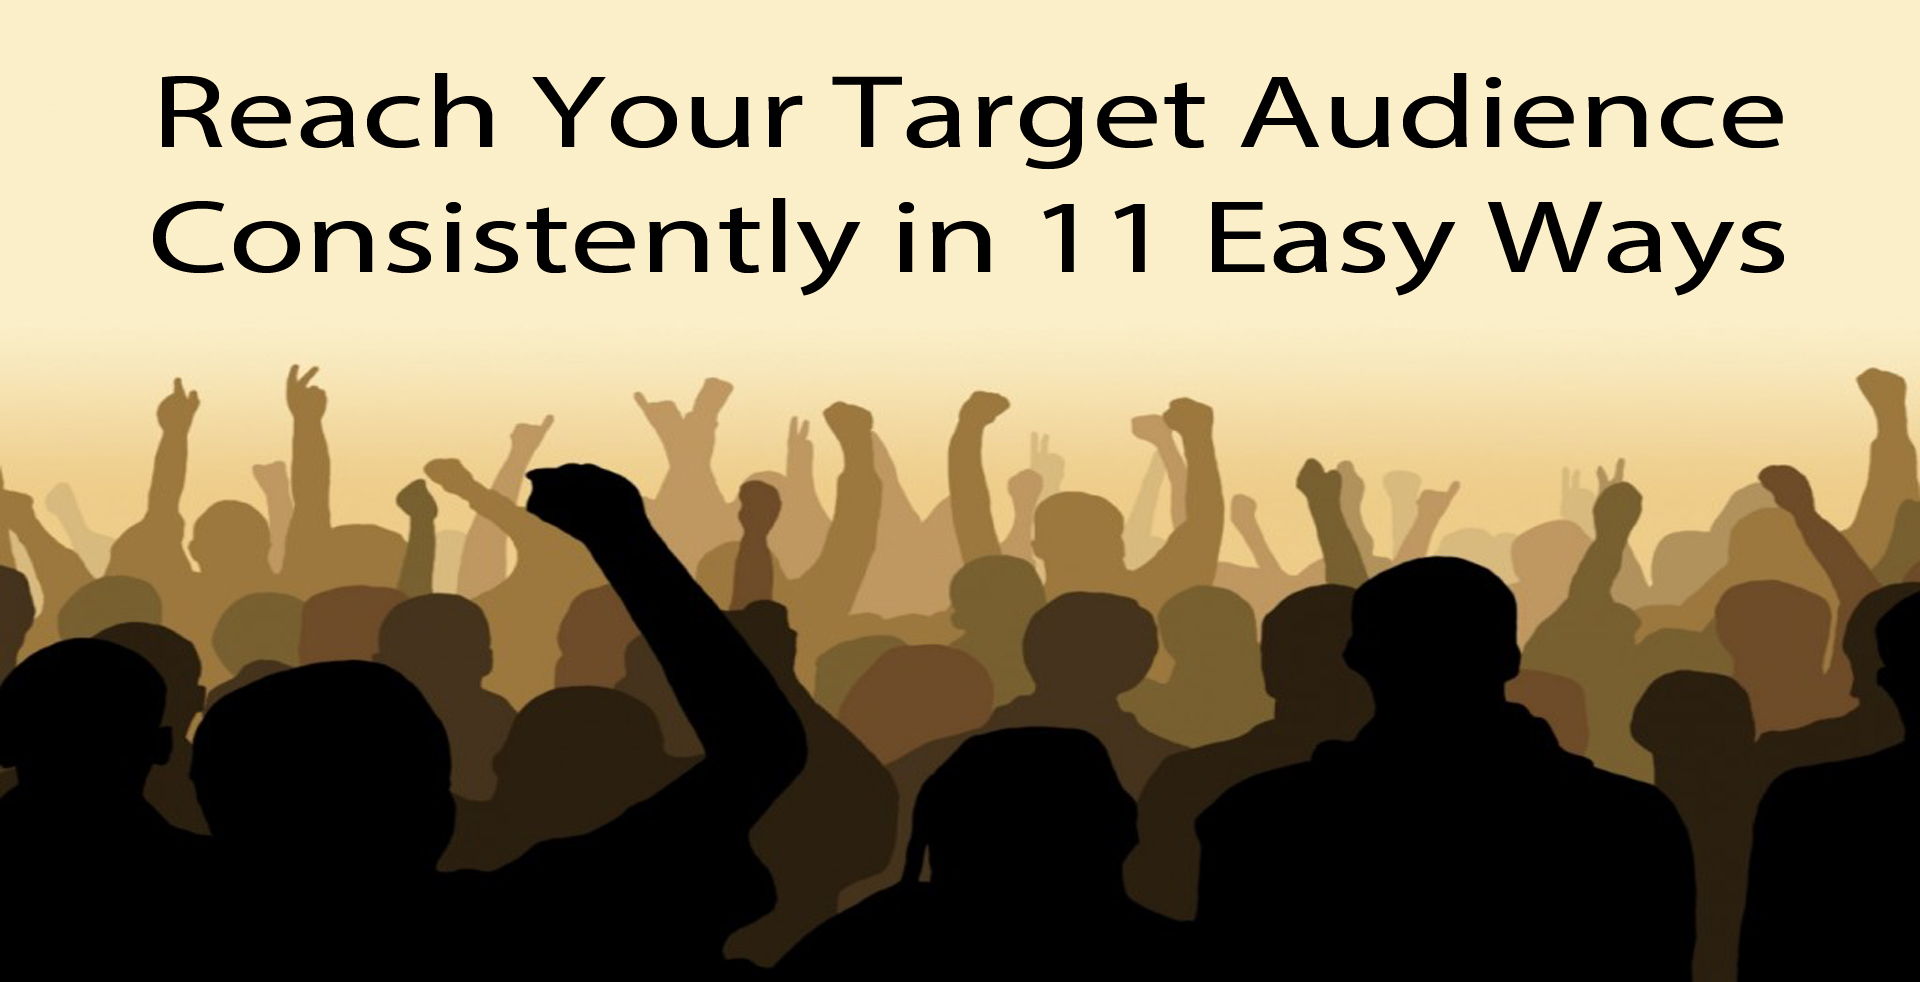 Reach Your Target Audience Consistently in 11 Easy Ways